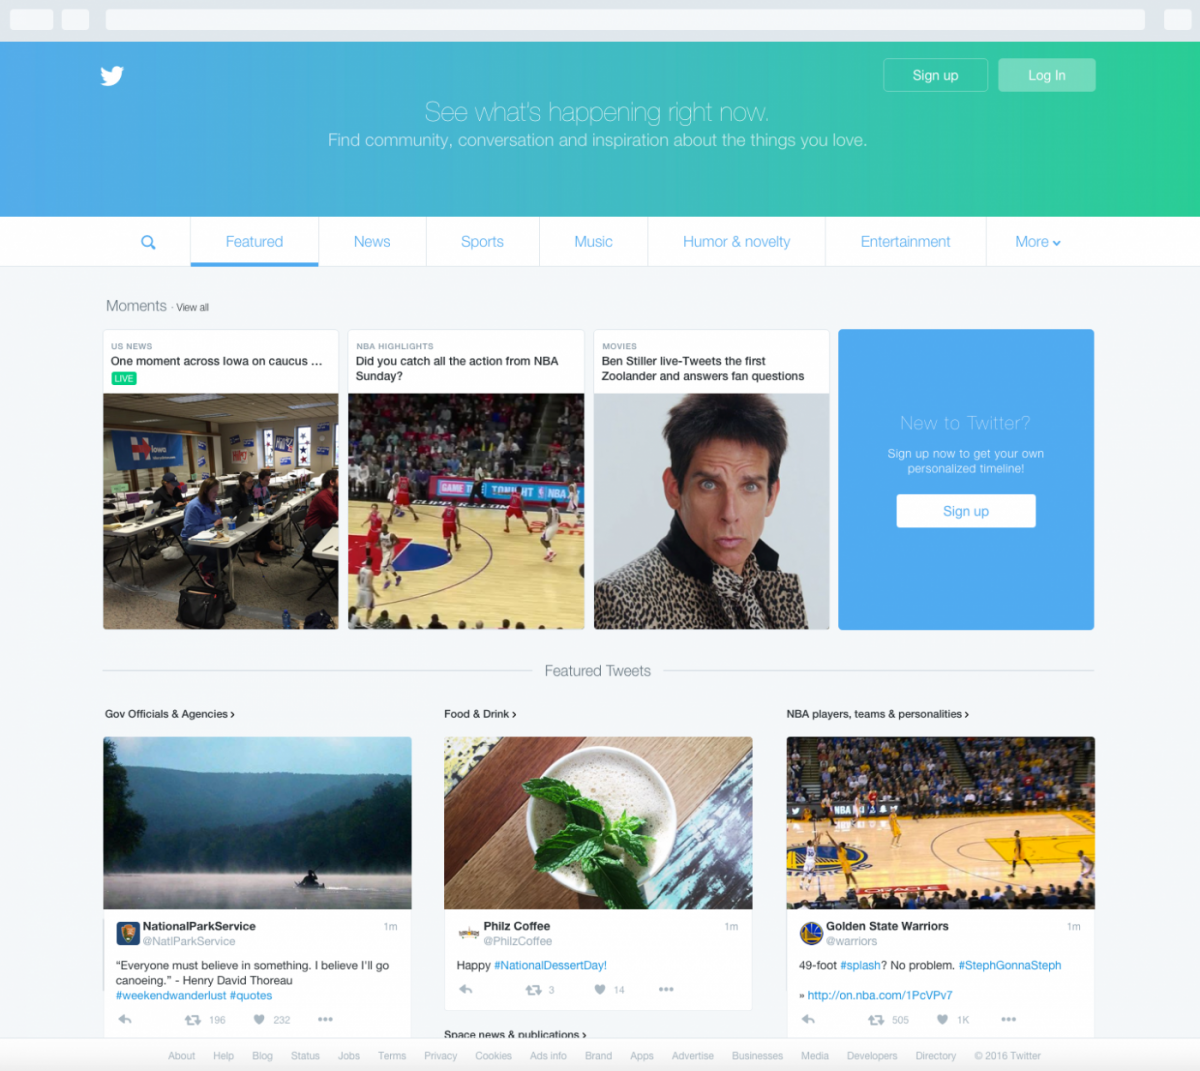 Twitter launches new homepage to engage offline and new users